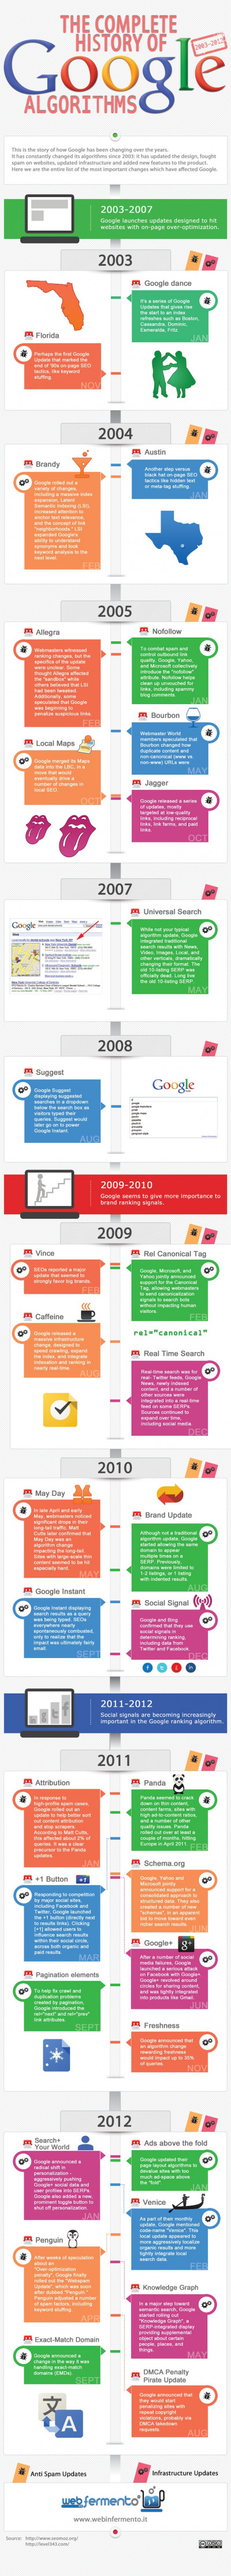 The Complete history of Google Algorithms